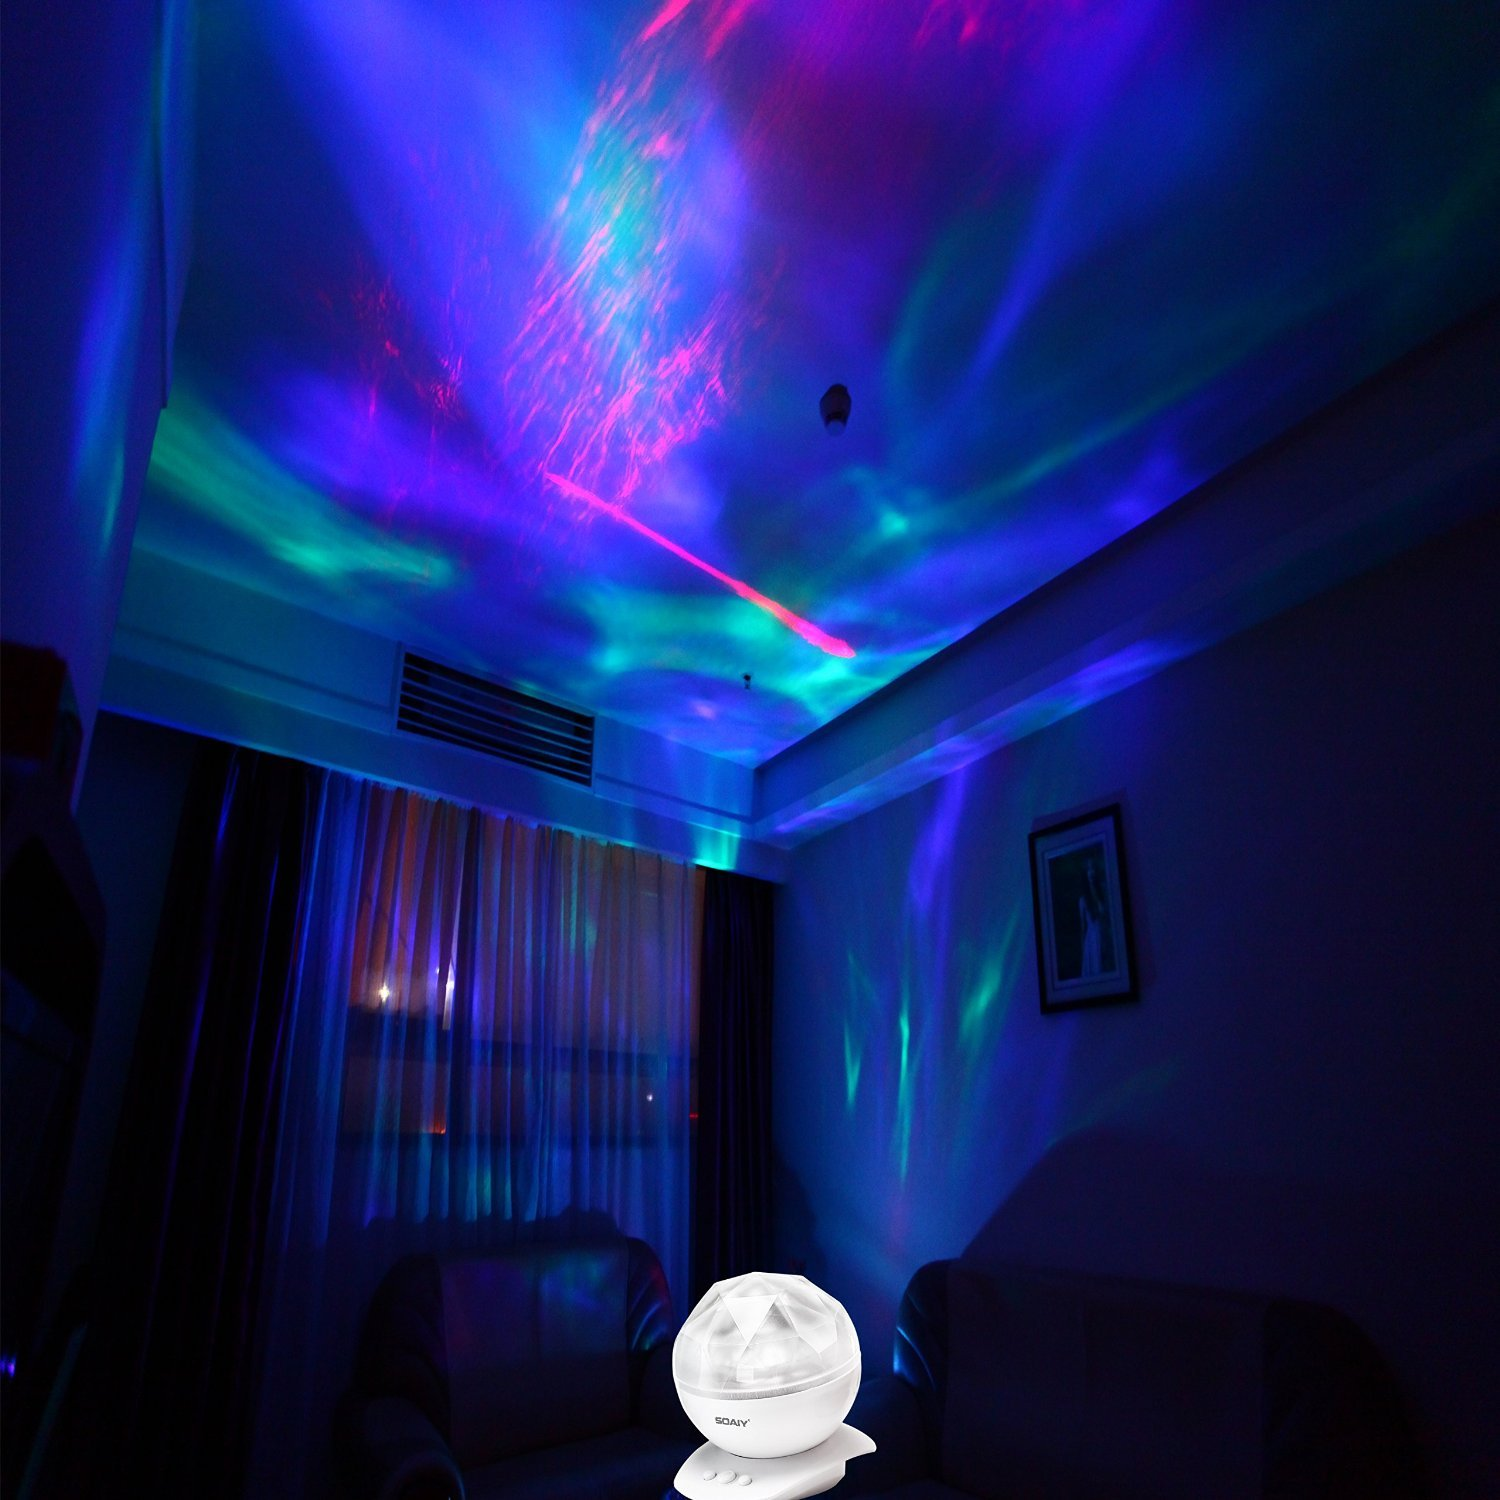 Kids bedroom ceiling lights -  Light Projector With Build In Speaker Relaxing Light Show Mood Light For Baby Nursery Adults And Kids Bedroom Living Room White Amazon Com